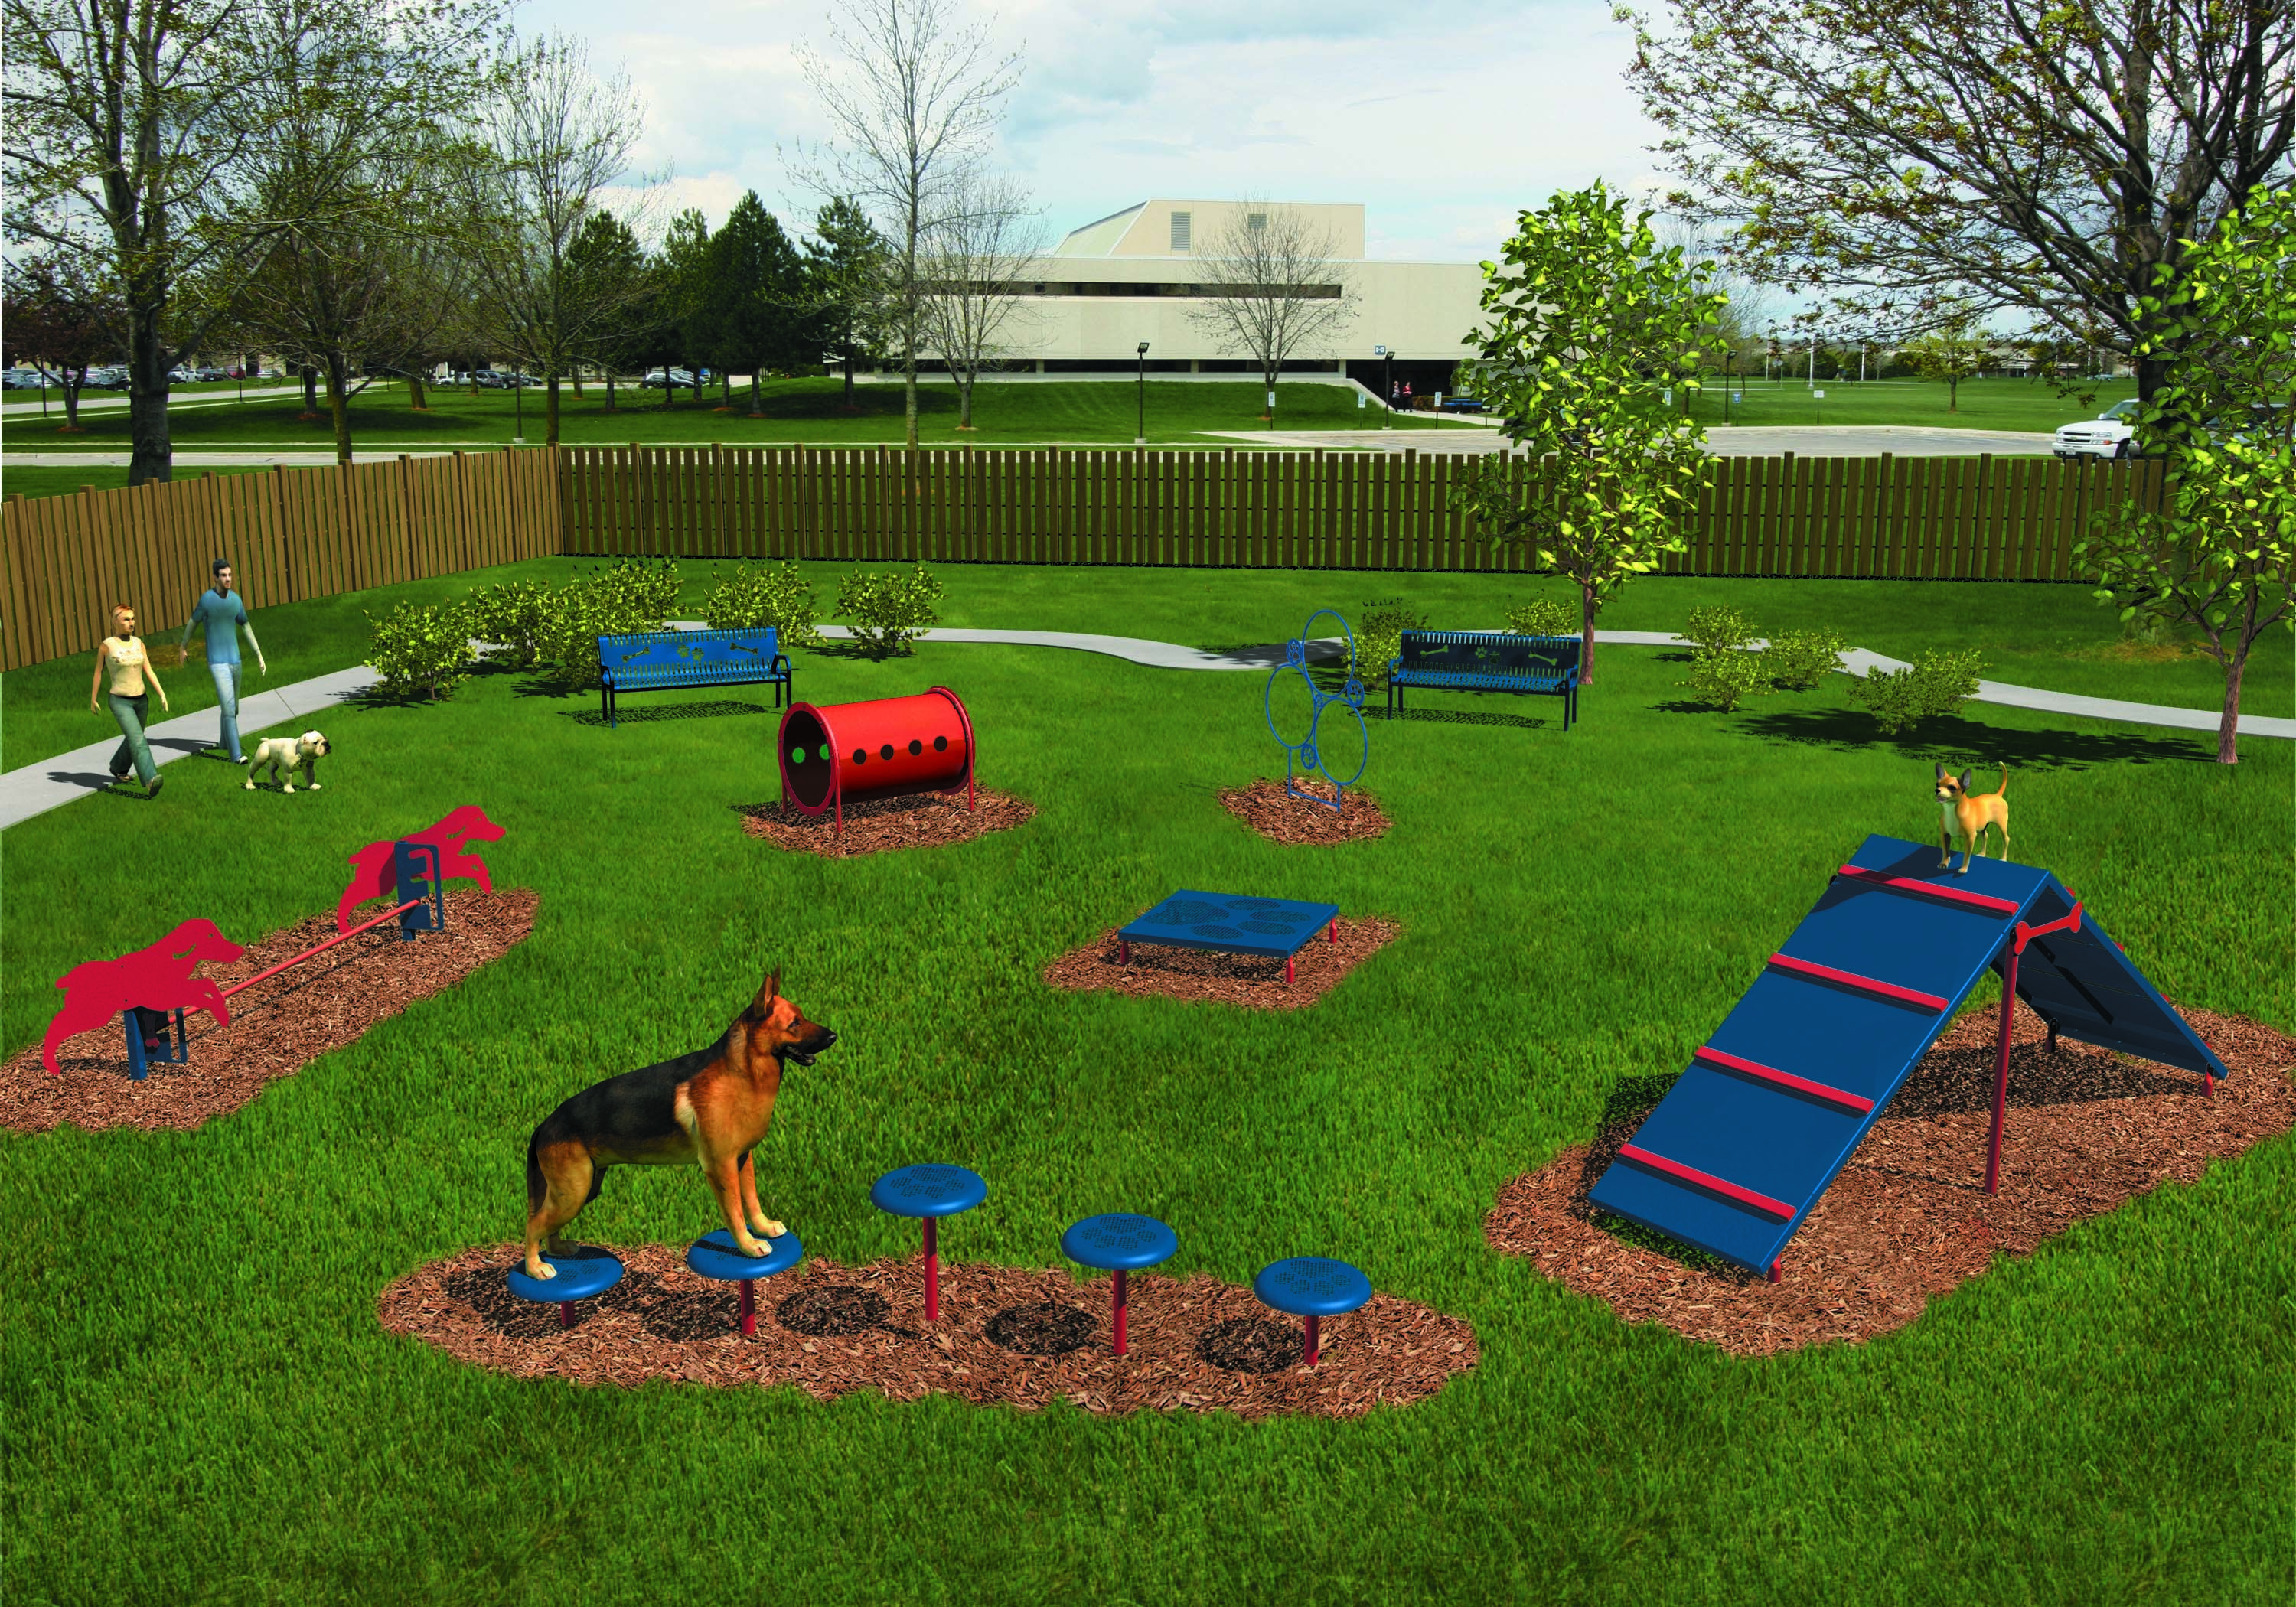 Rendering of BarkPark's Intermediate Course in the Playful Color Scheme